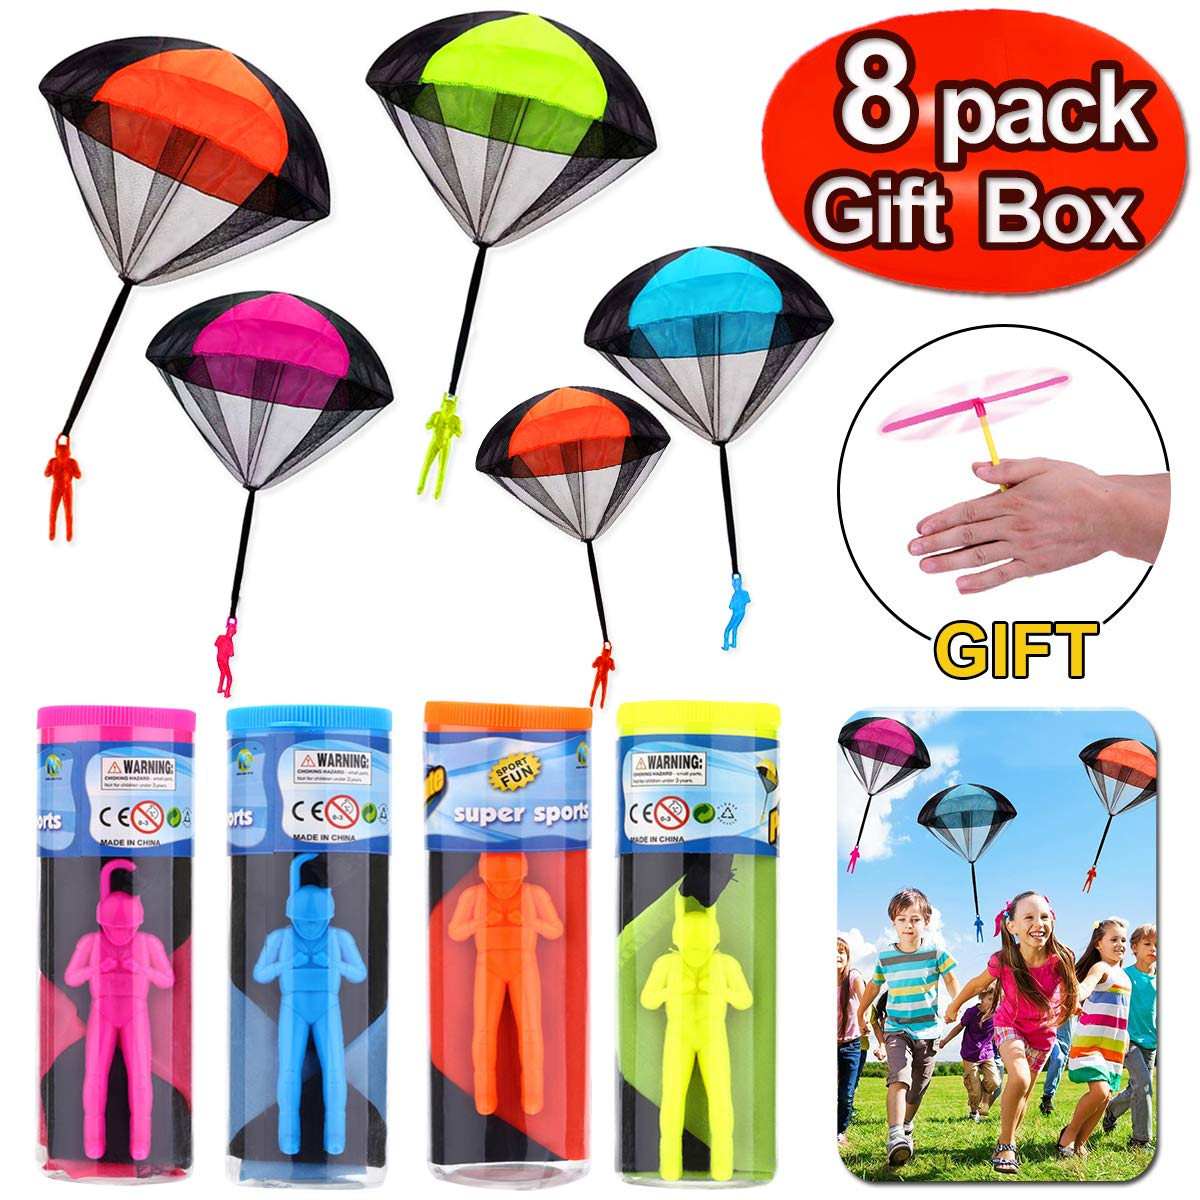 8 Pack Parachute Toys with Rocket Launcher Gift Box - Tangle Free Hand Throwing Toy Novelty Outdoor Children Parachute Flying Toys Skydiver Men Party Favor Supplies for Kids Halloween Holiday Gift by iGeeKid